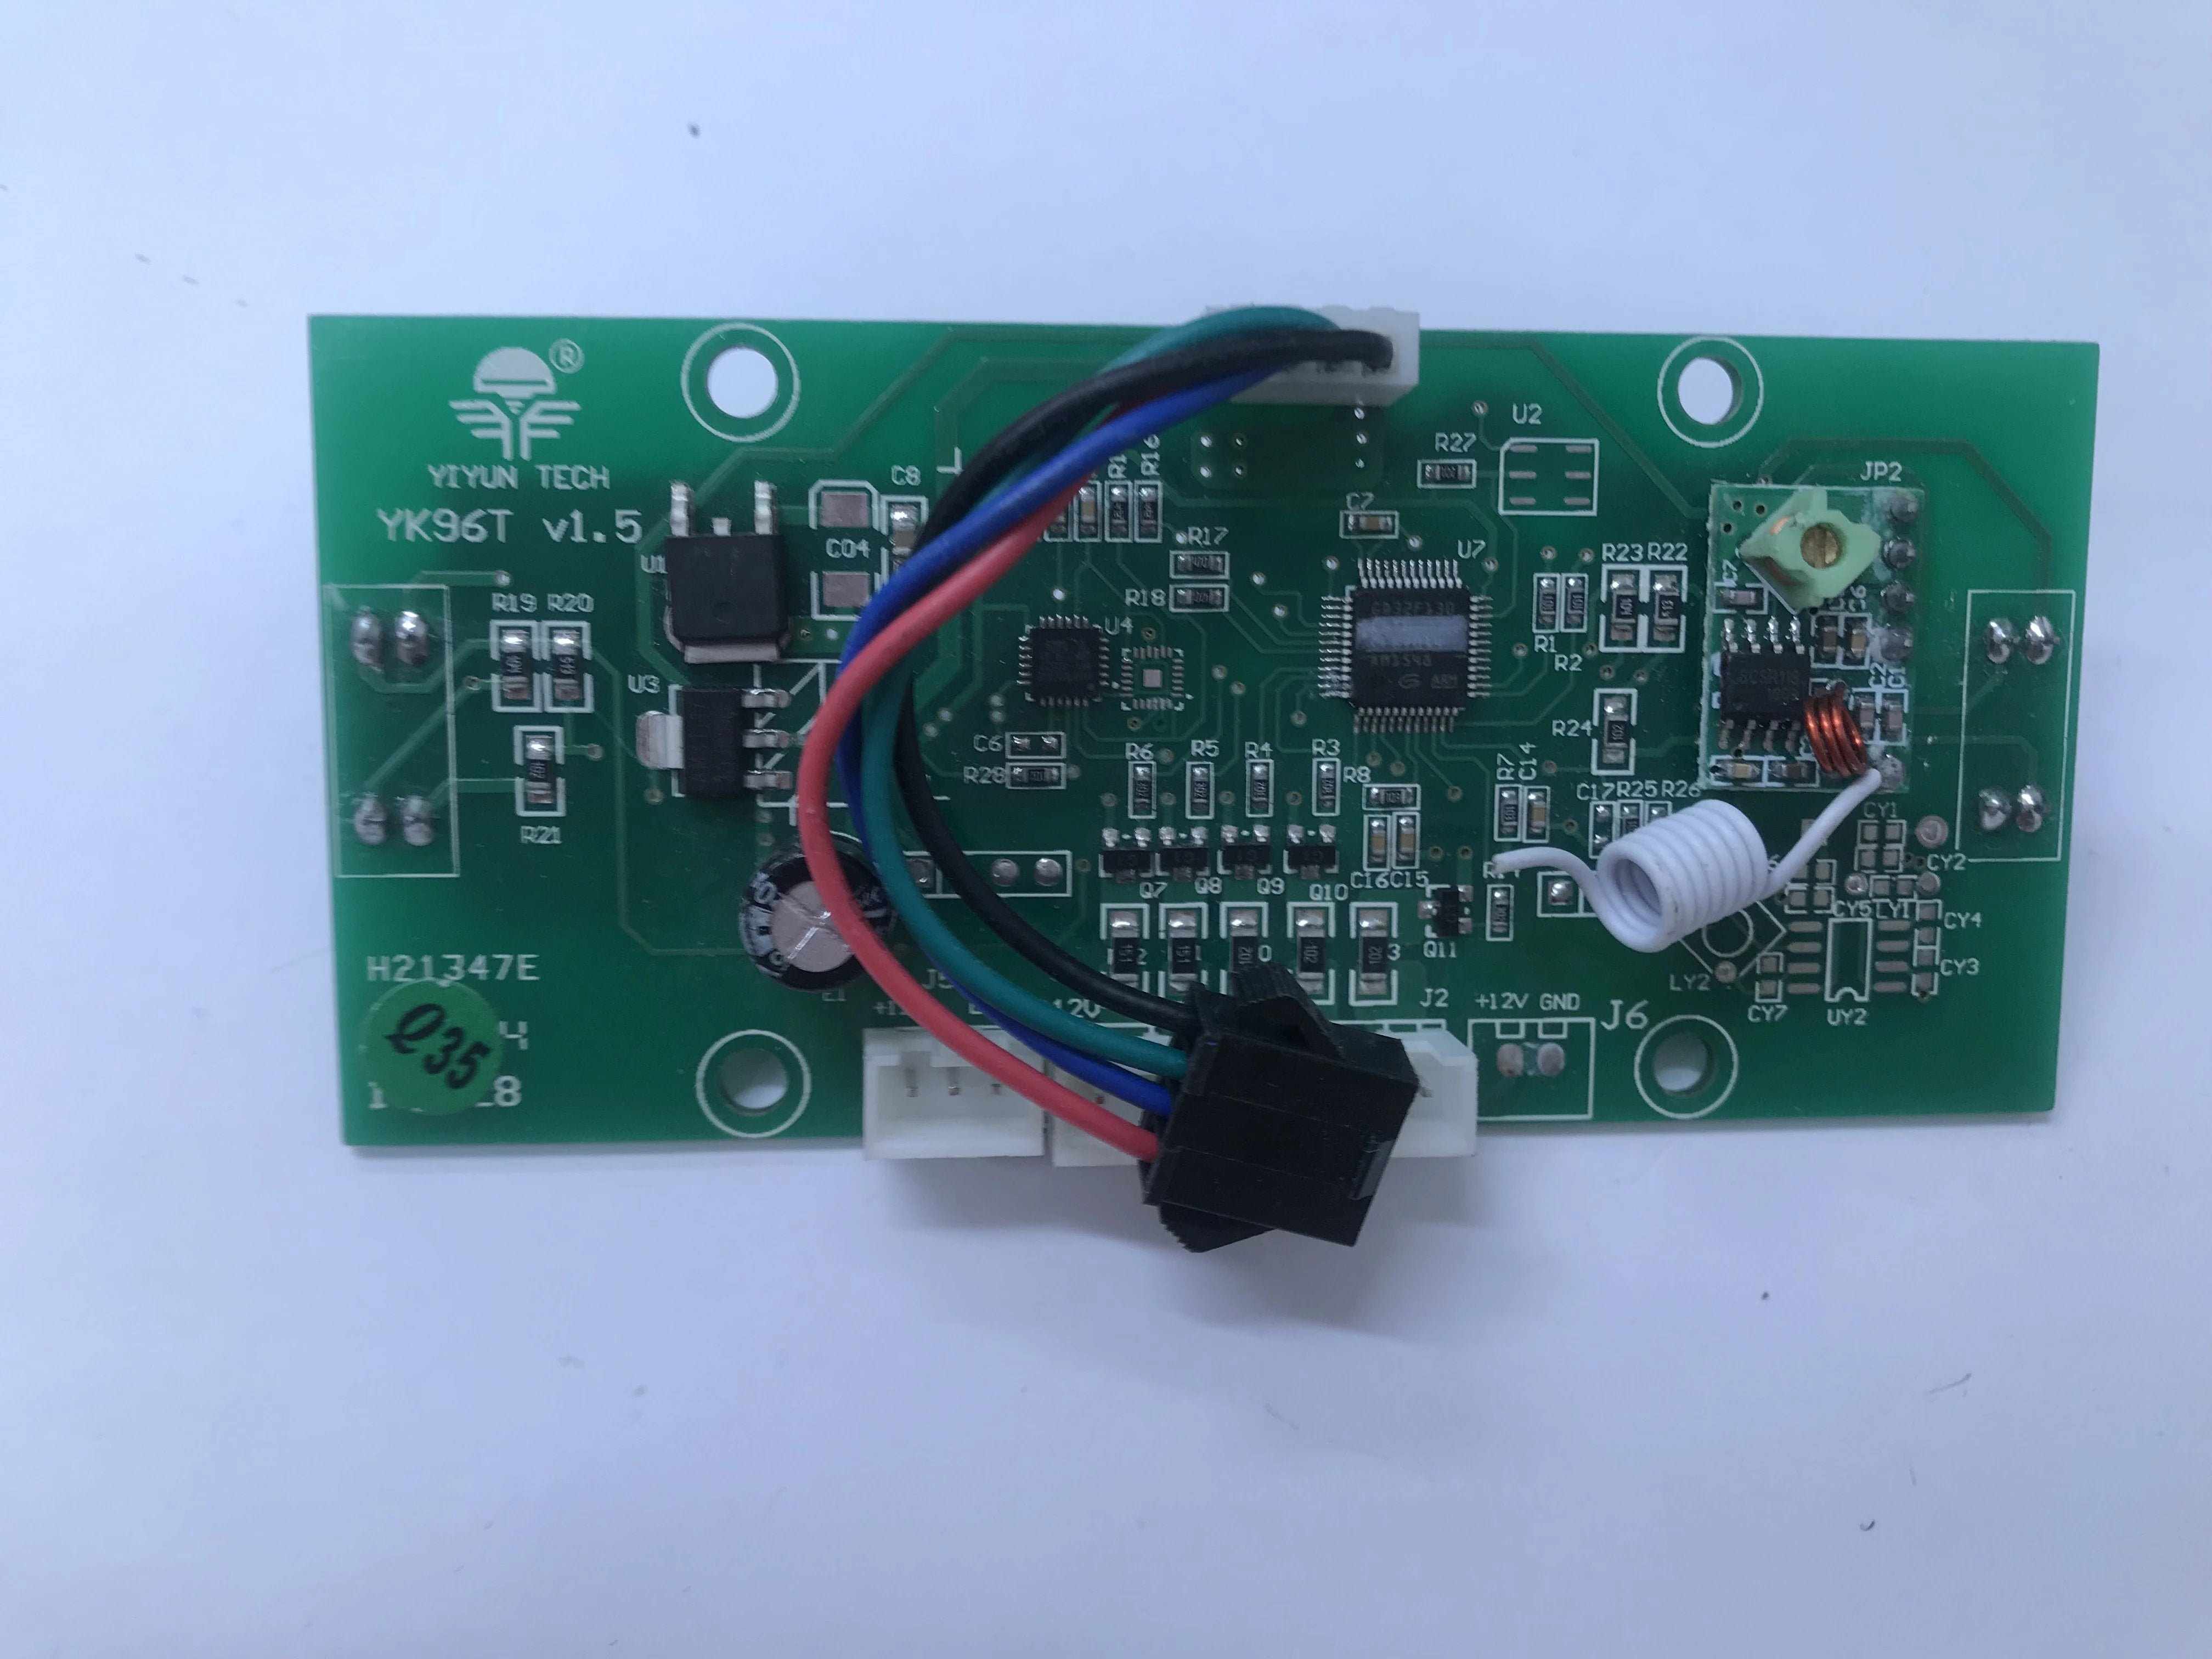 GYRO CIRCUIT BOARD (WIRED TYPE) - YIYUN TECH - YK96T-V1.5 + REMOTE AERIAL